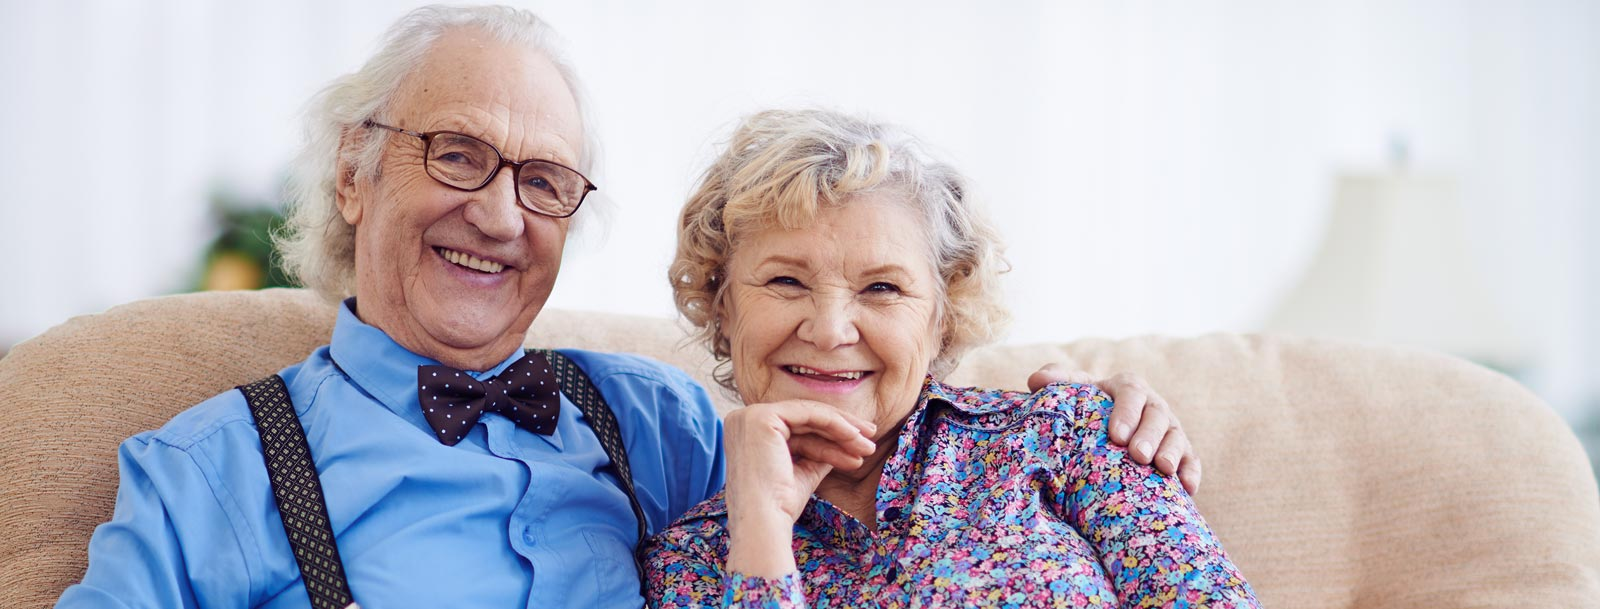 Helpful resources for the senior living facility in Arkansas City